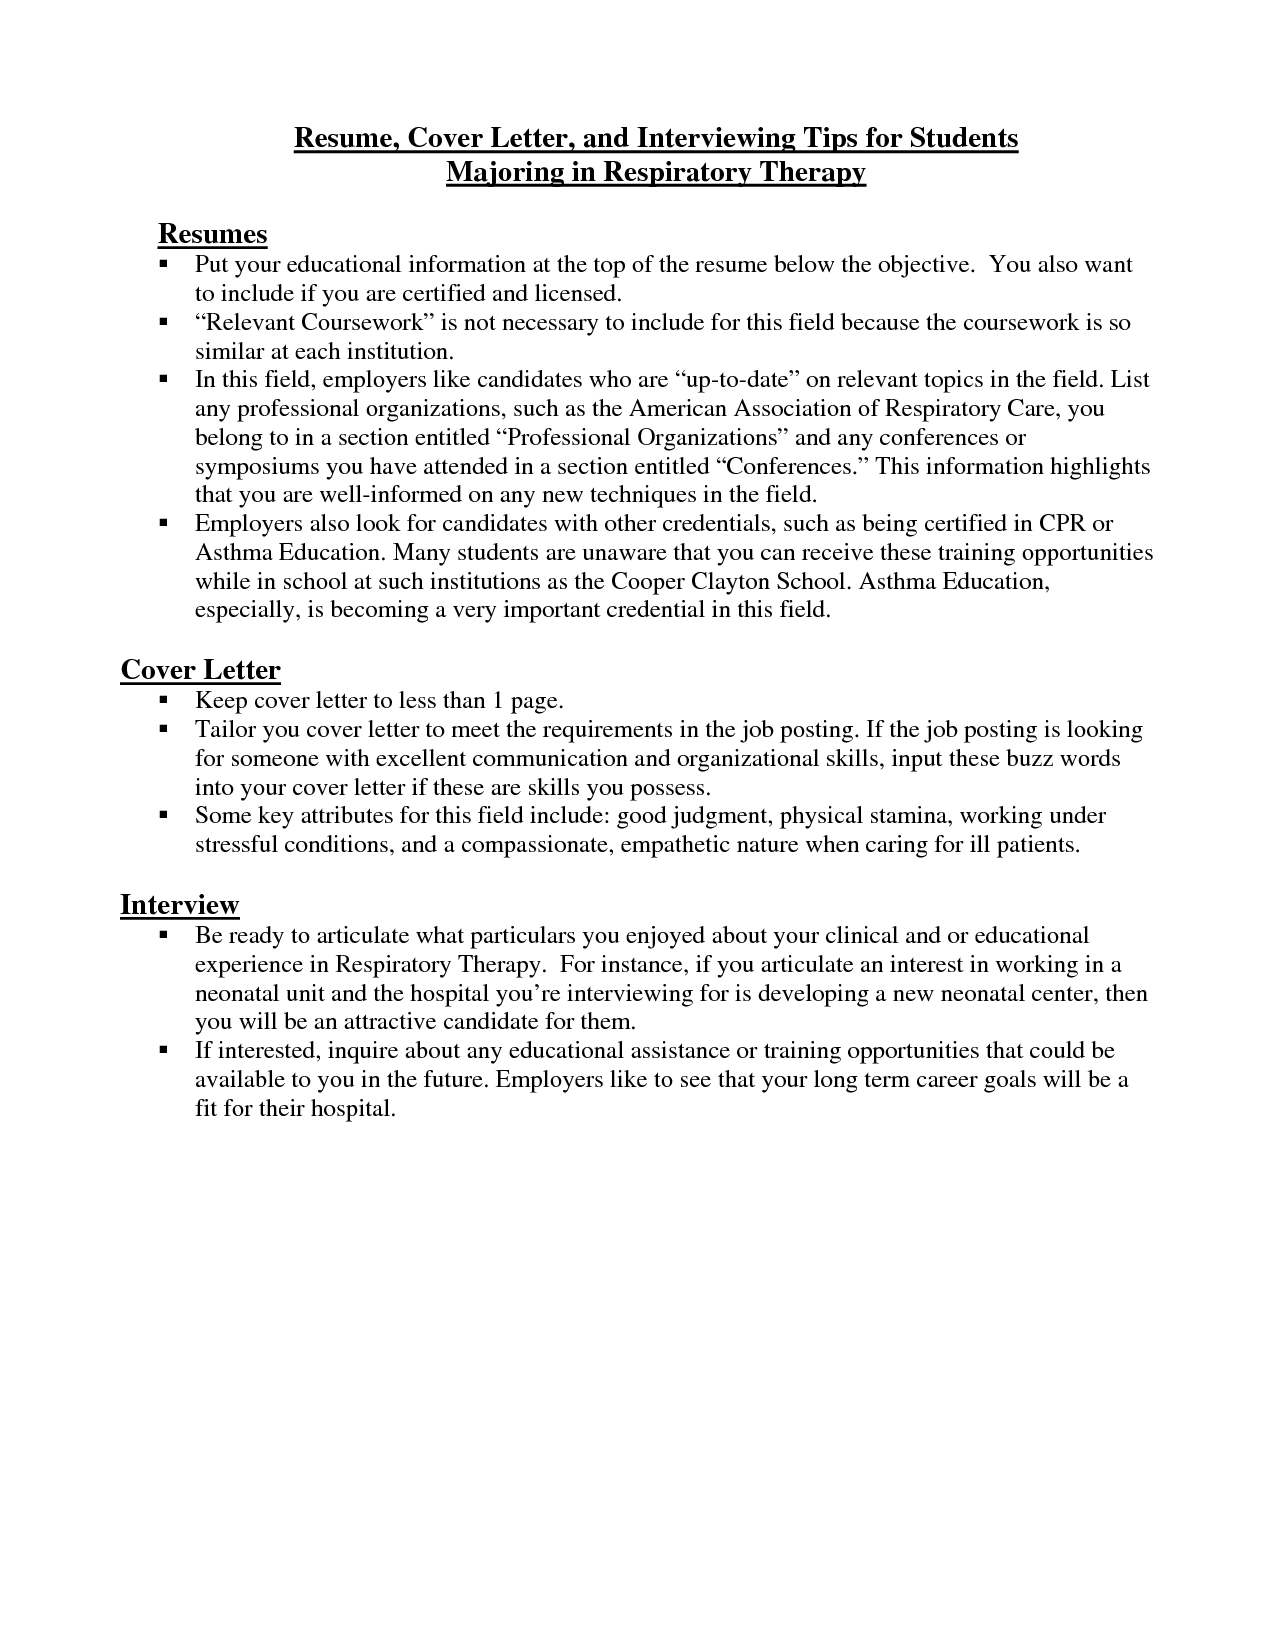 Respiratory Therapist Resume Sample Respiratory Therapist Cover Letter  Resume Cover Letter And